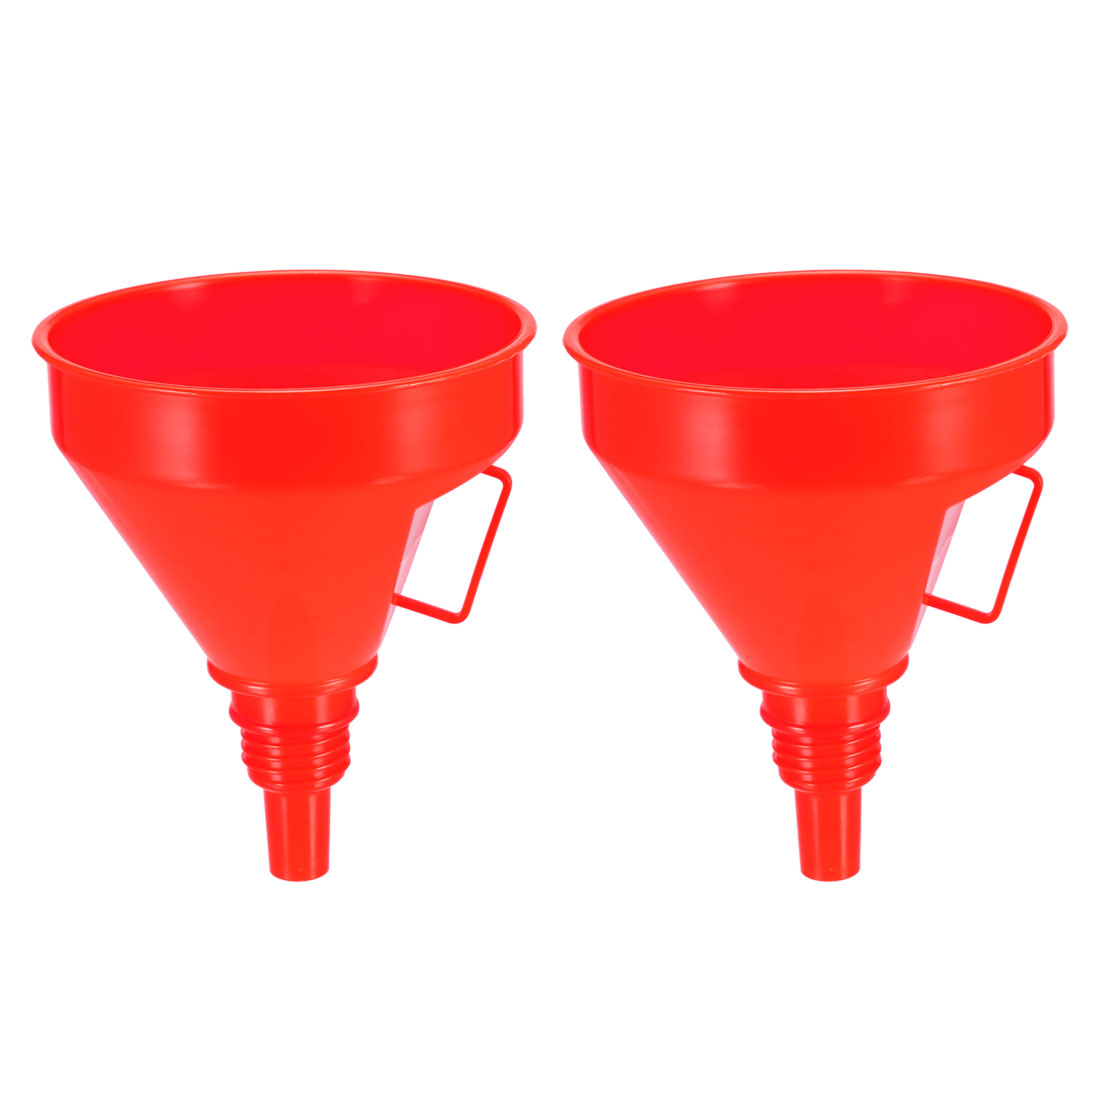 """Filter Funnel 5"""" Plastic Feul Funnel Red for Petrol Engine Oil Water Fuel 2pcs"""